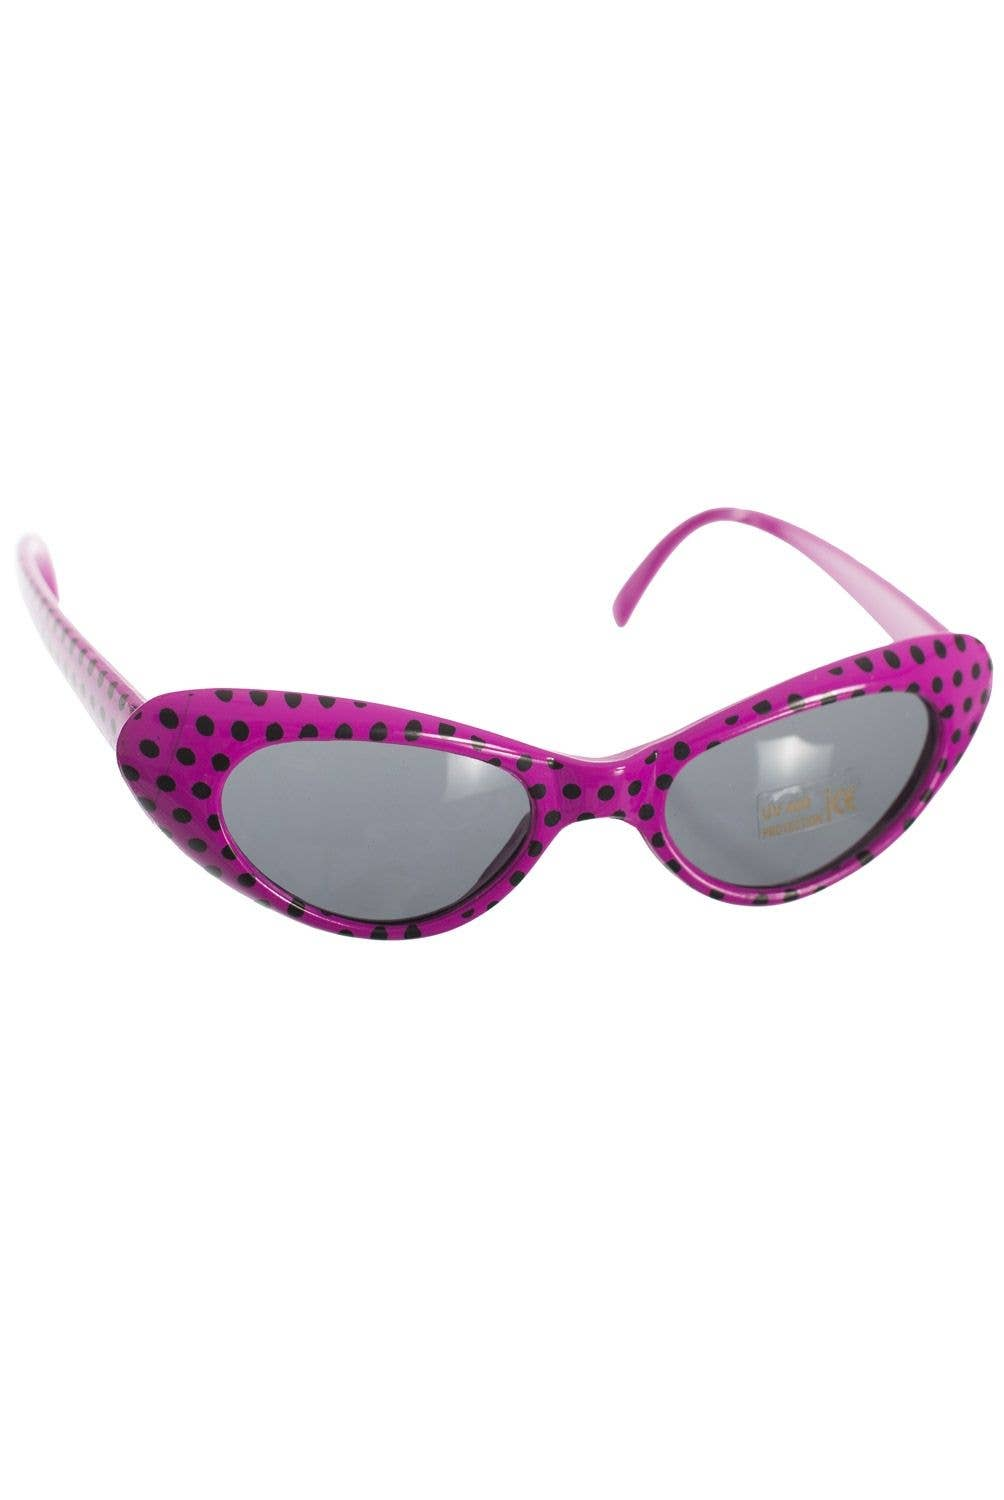 84e8ed4fff 1950 s Retro Dark Pink Pink And Black Polka Dot Costume Sunglasses